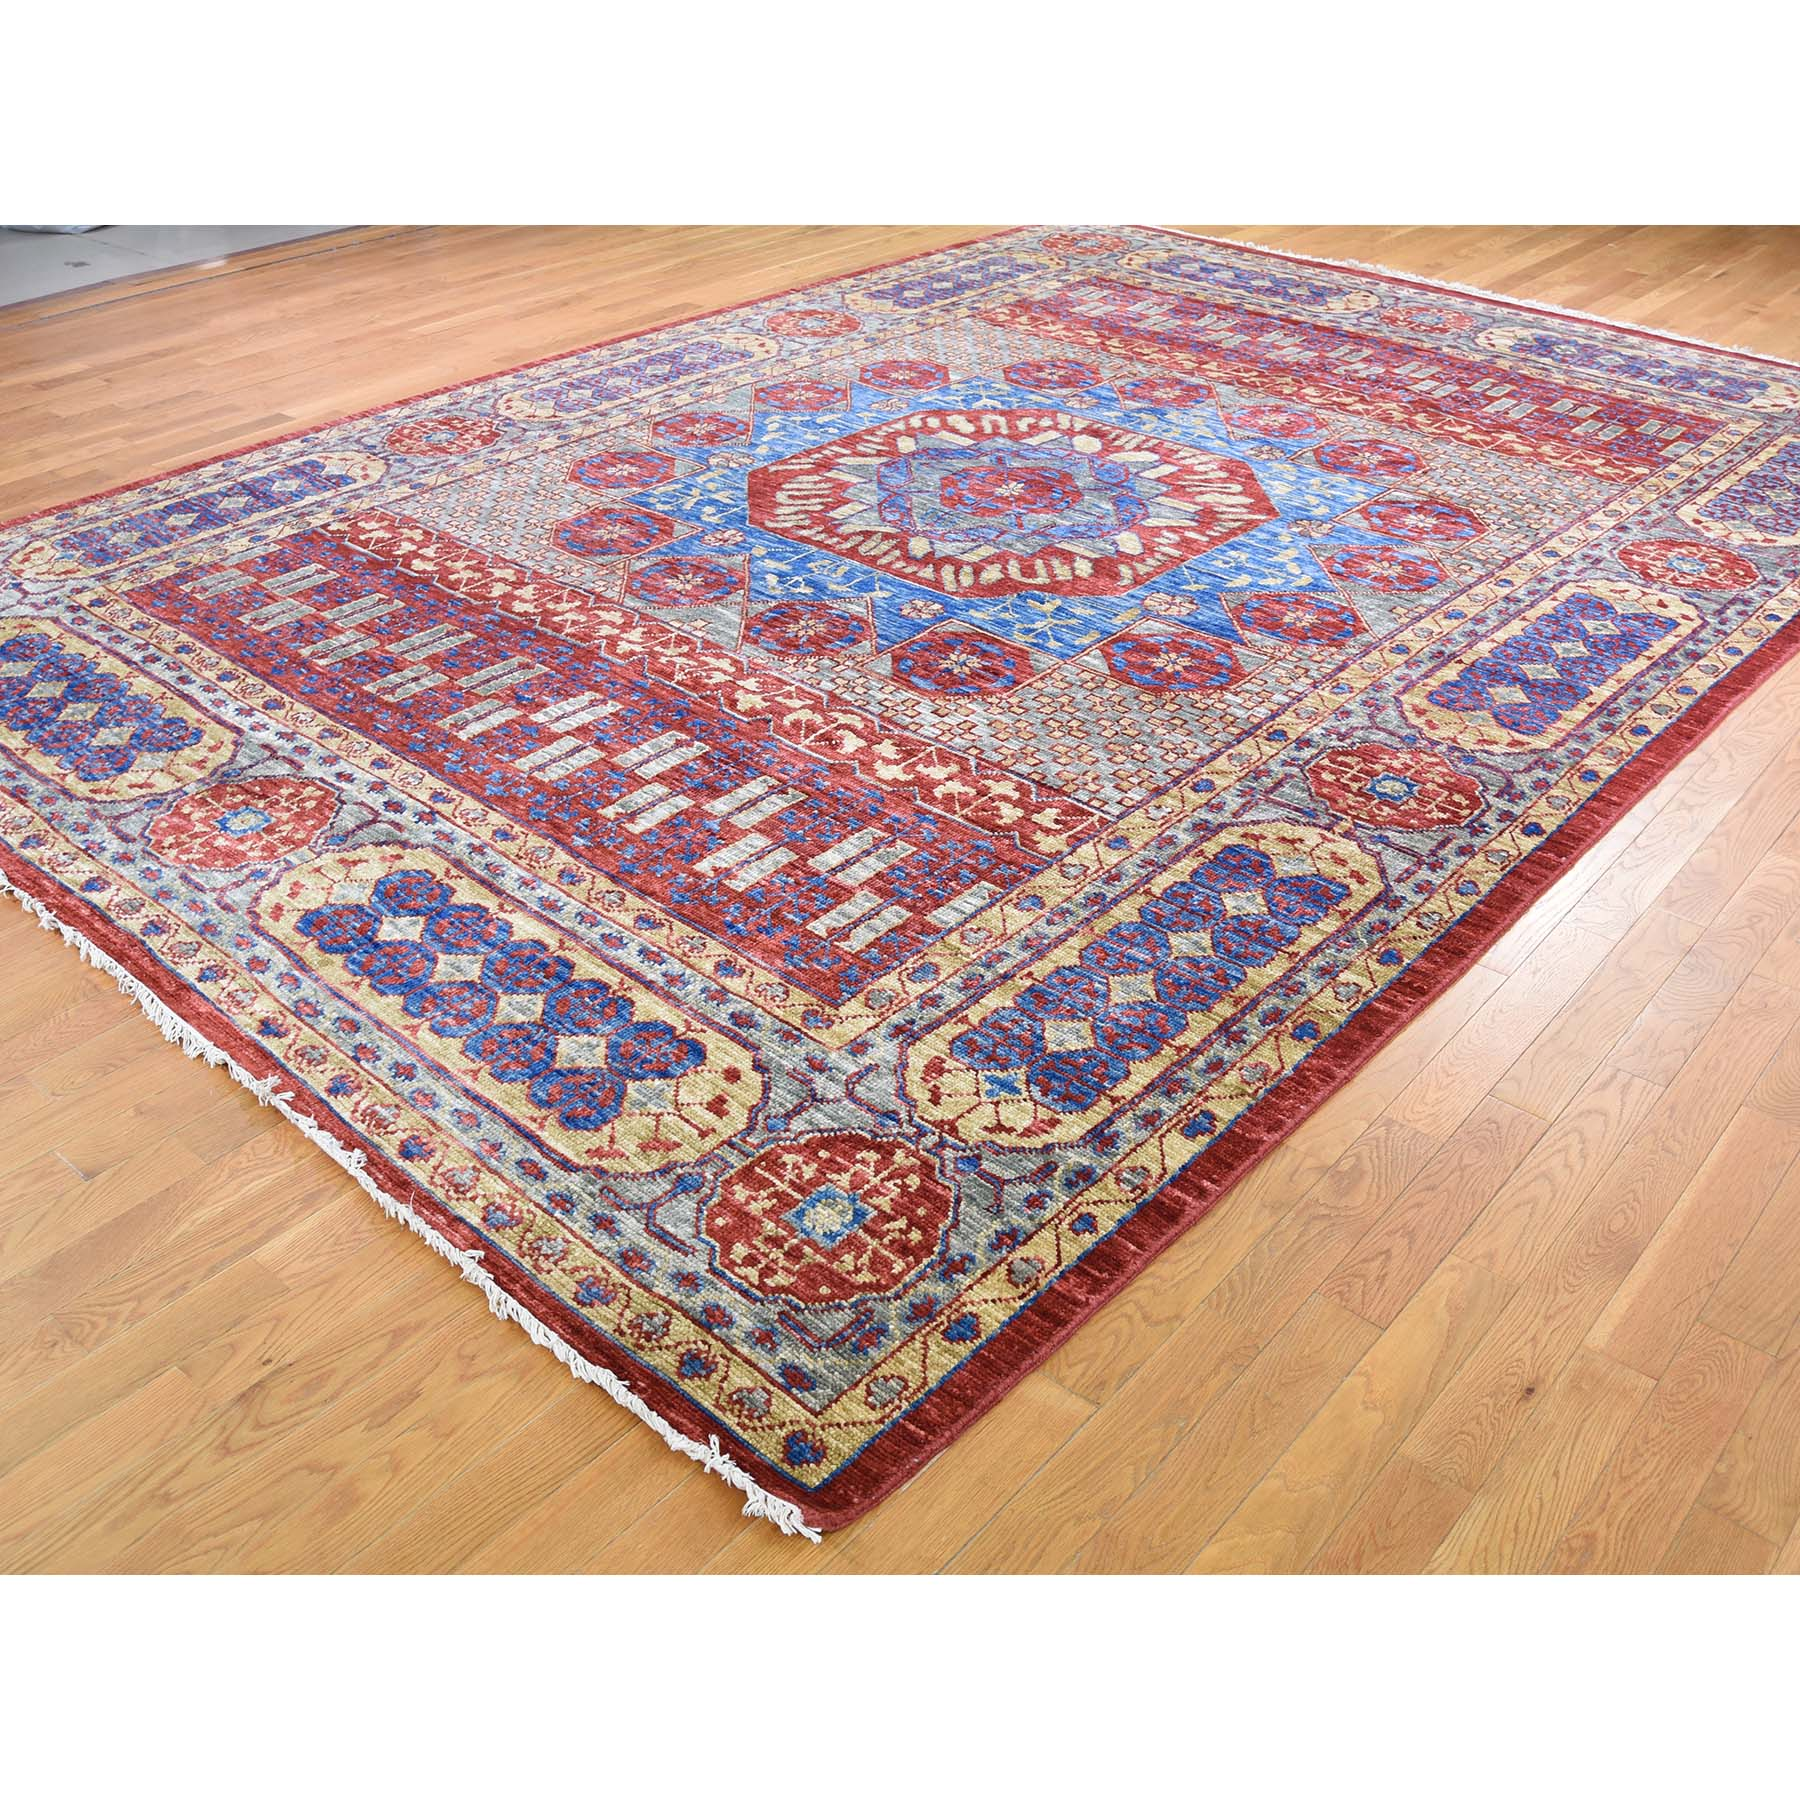 "Handmade Mamluk Rectangle Rug > Design# SH45891 > Size: 10'-0"" x 14'-3"" [ONLINE ONLY]"